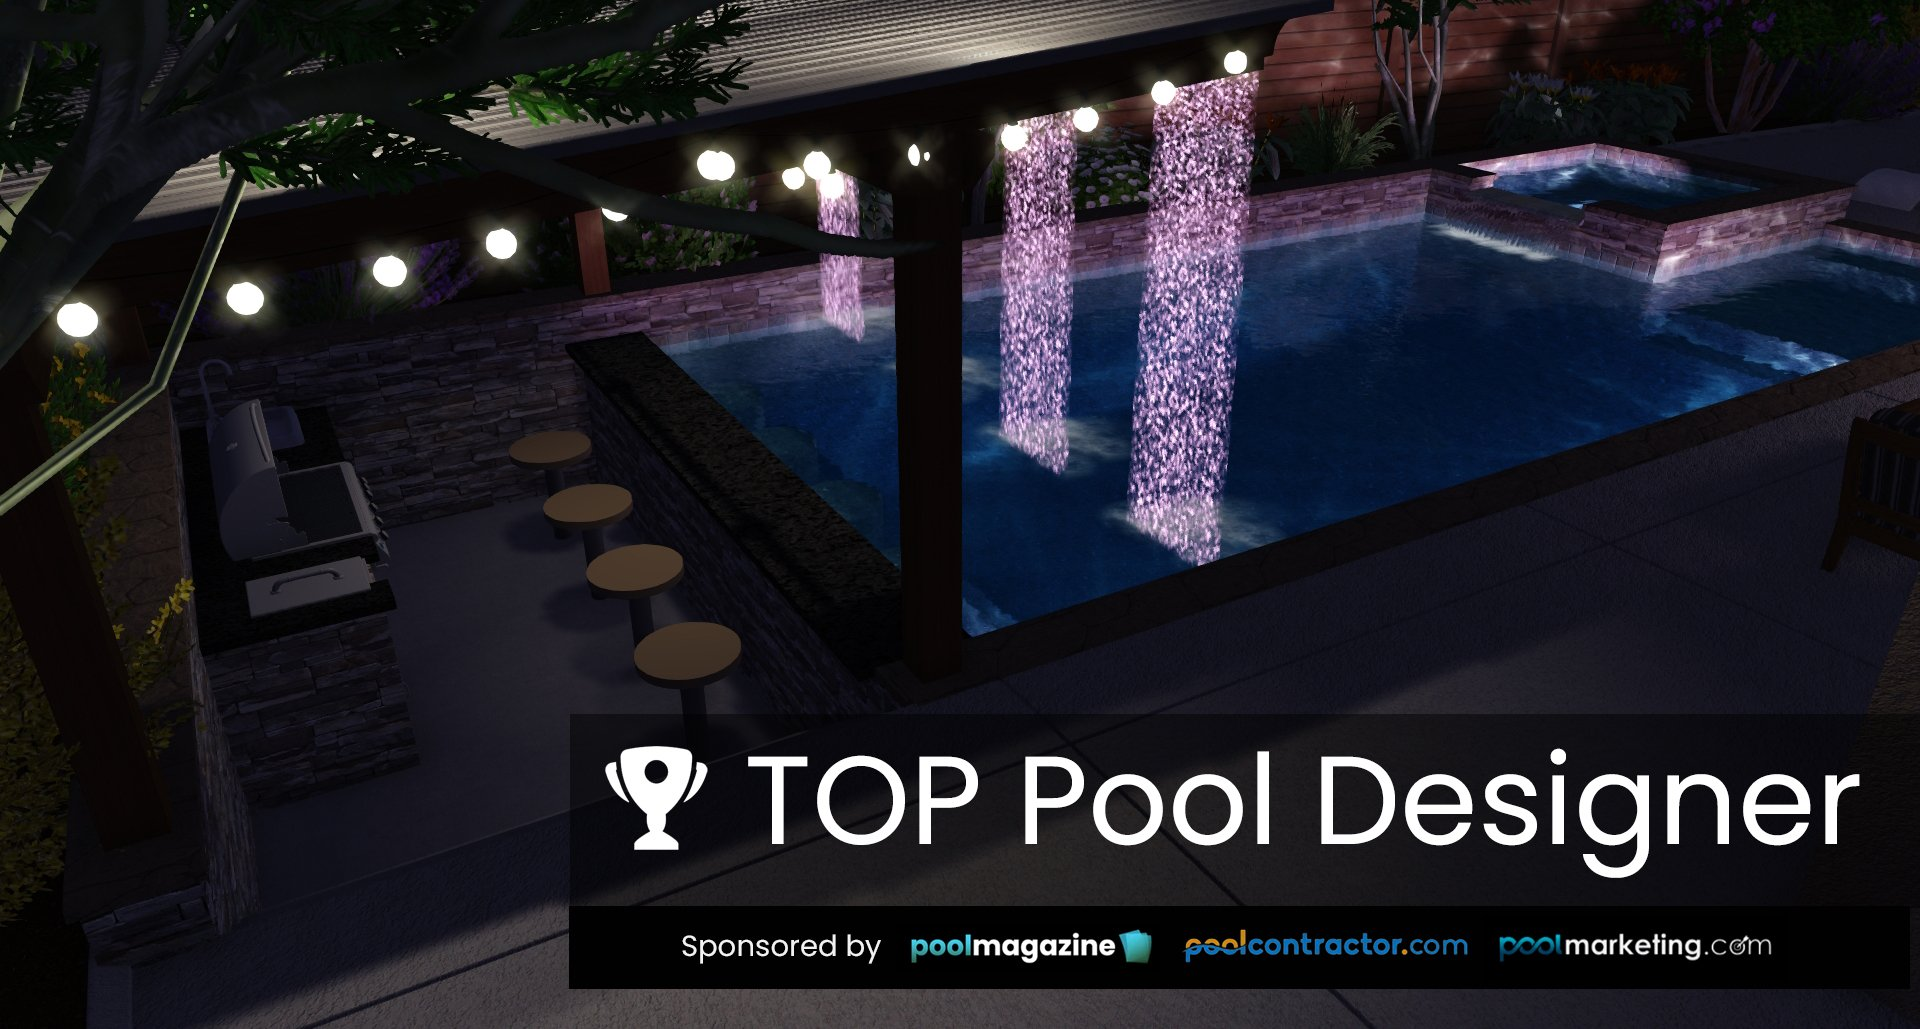 Top Pool Designer - Submit Your Entry for TOP Pool Designer Award - Hosted by PoolDesigners.com and sponsored by Pool Magazine, Pool Contractor and Pool Marketing